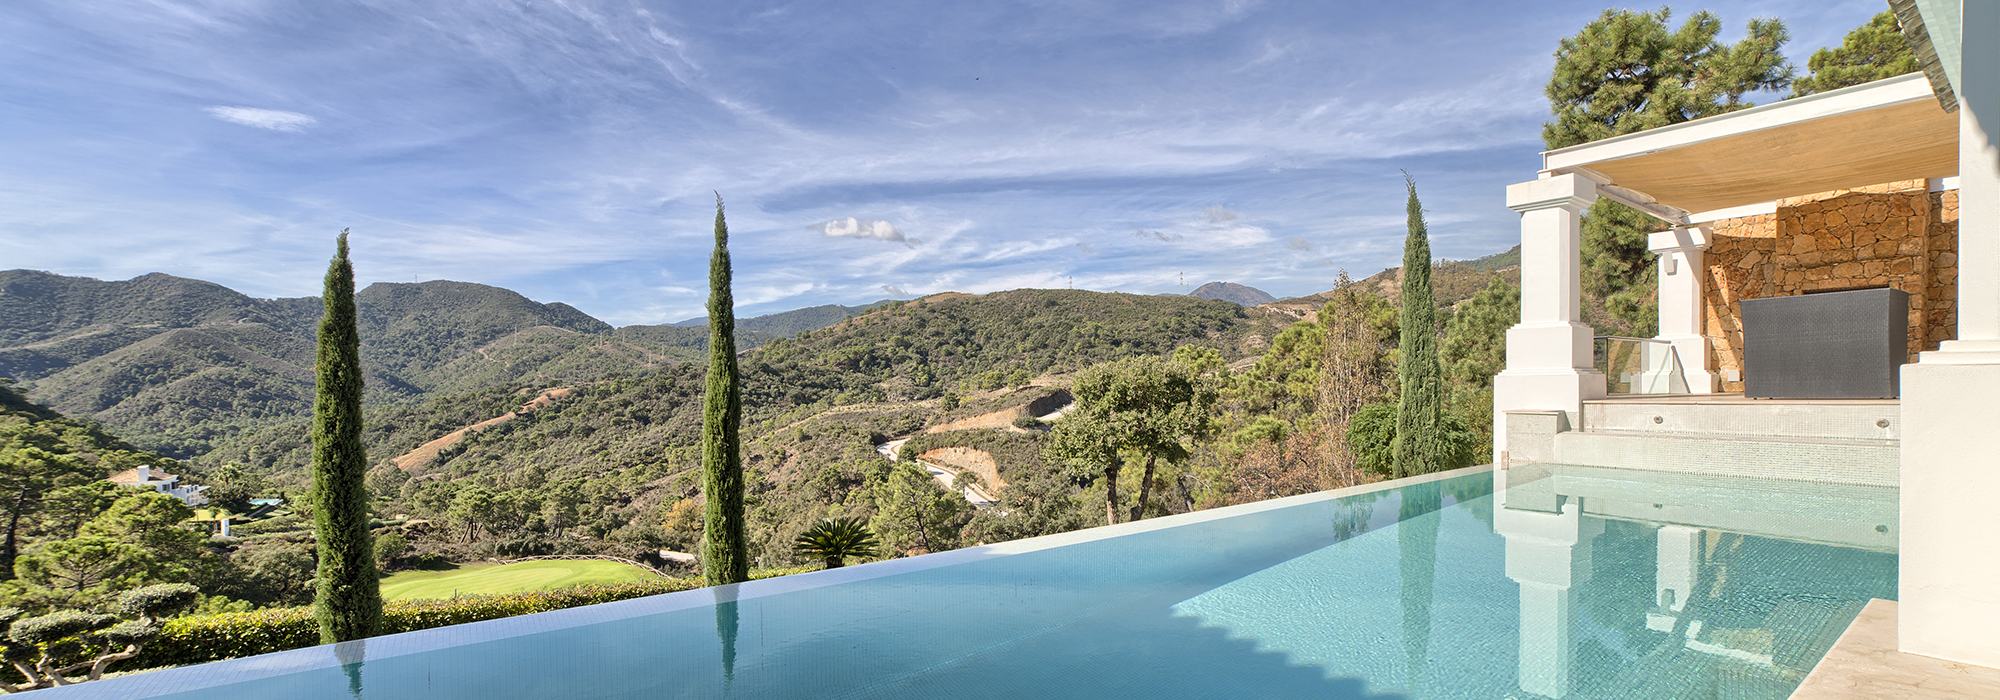 Wonderful Luxury Villa with a Classic Touch in La Zagaleta